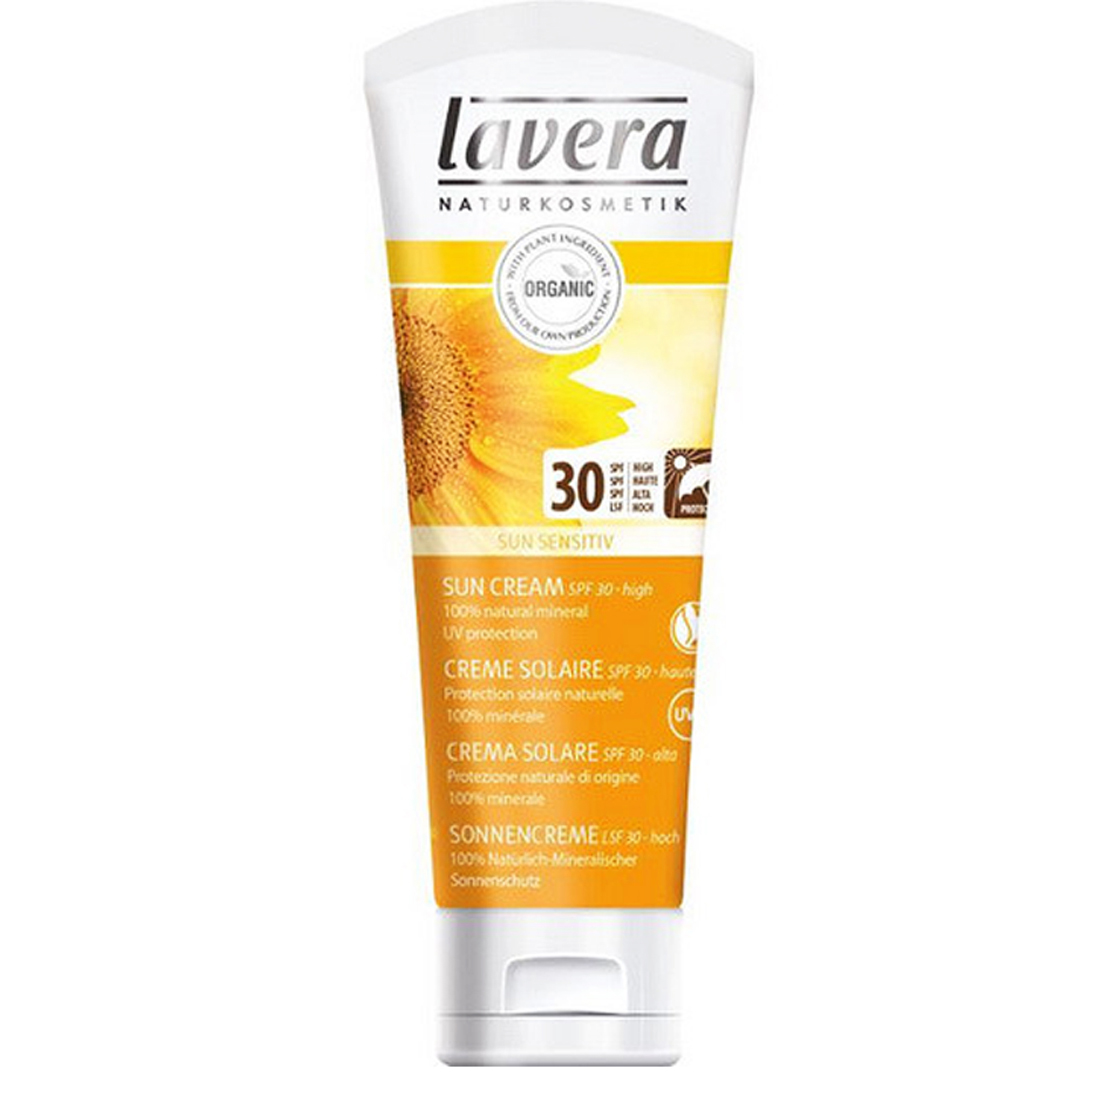 lavera-krem-opalovaci-soft-spf-30-sun-sensitive-75-ml